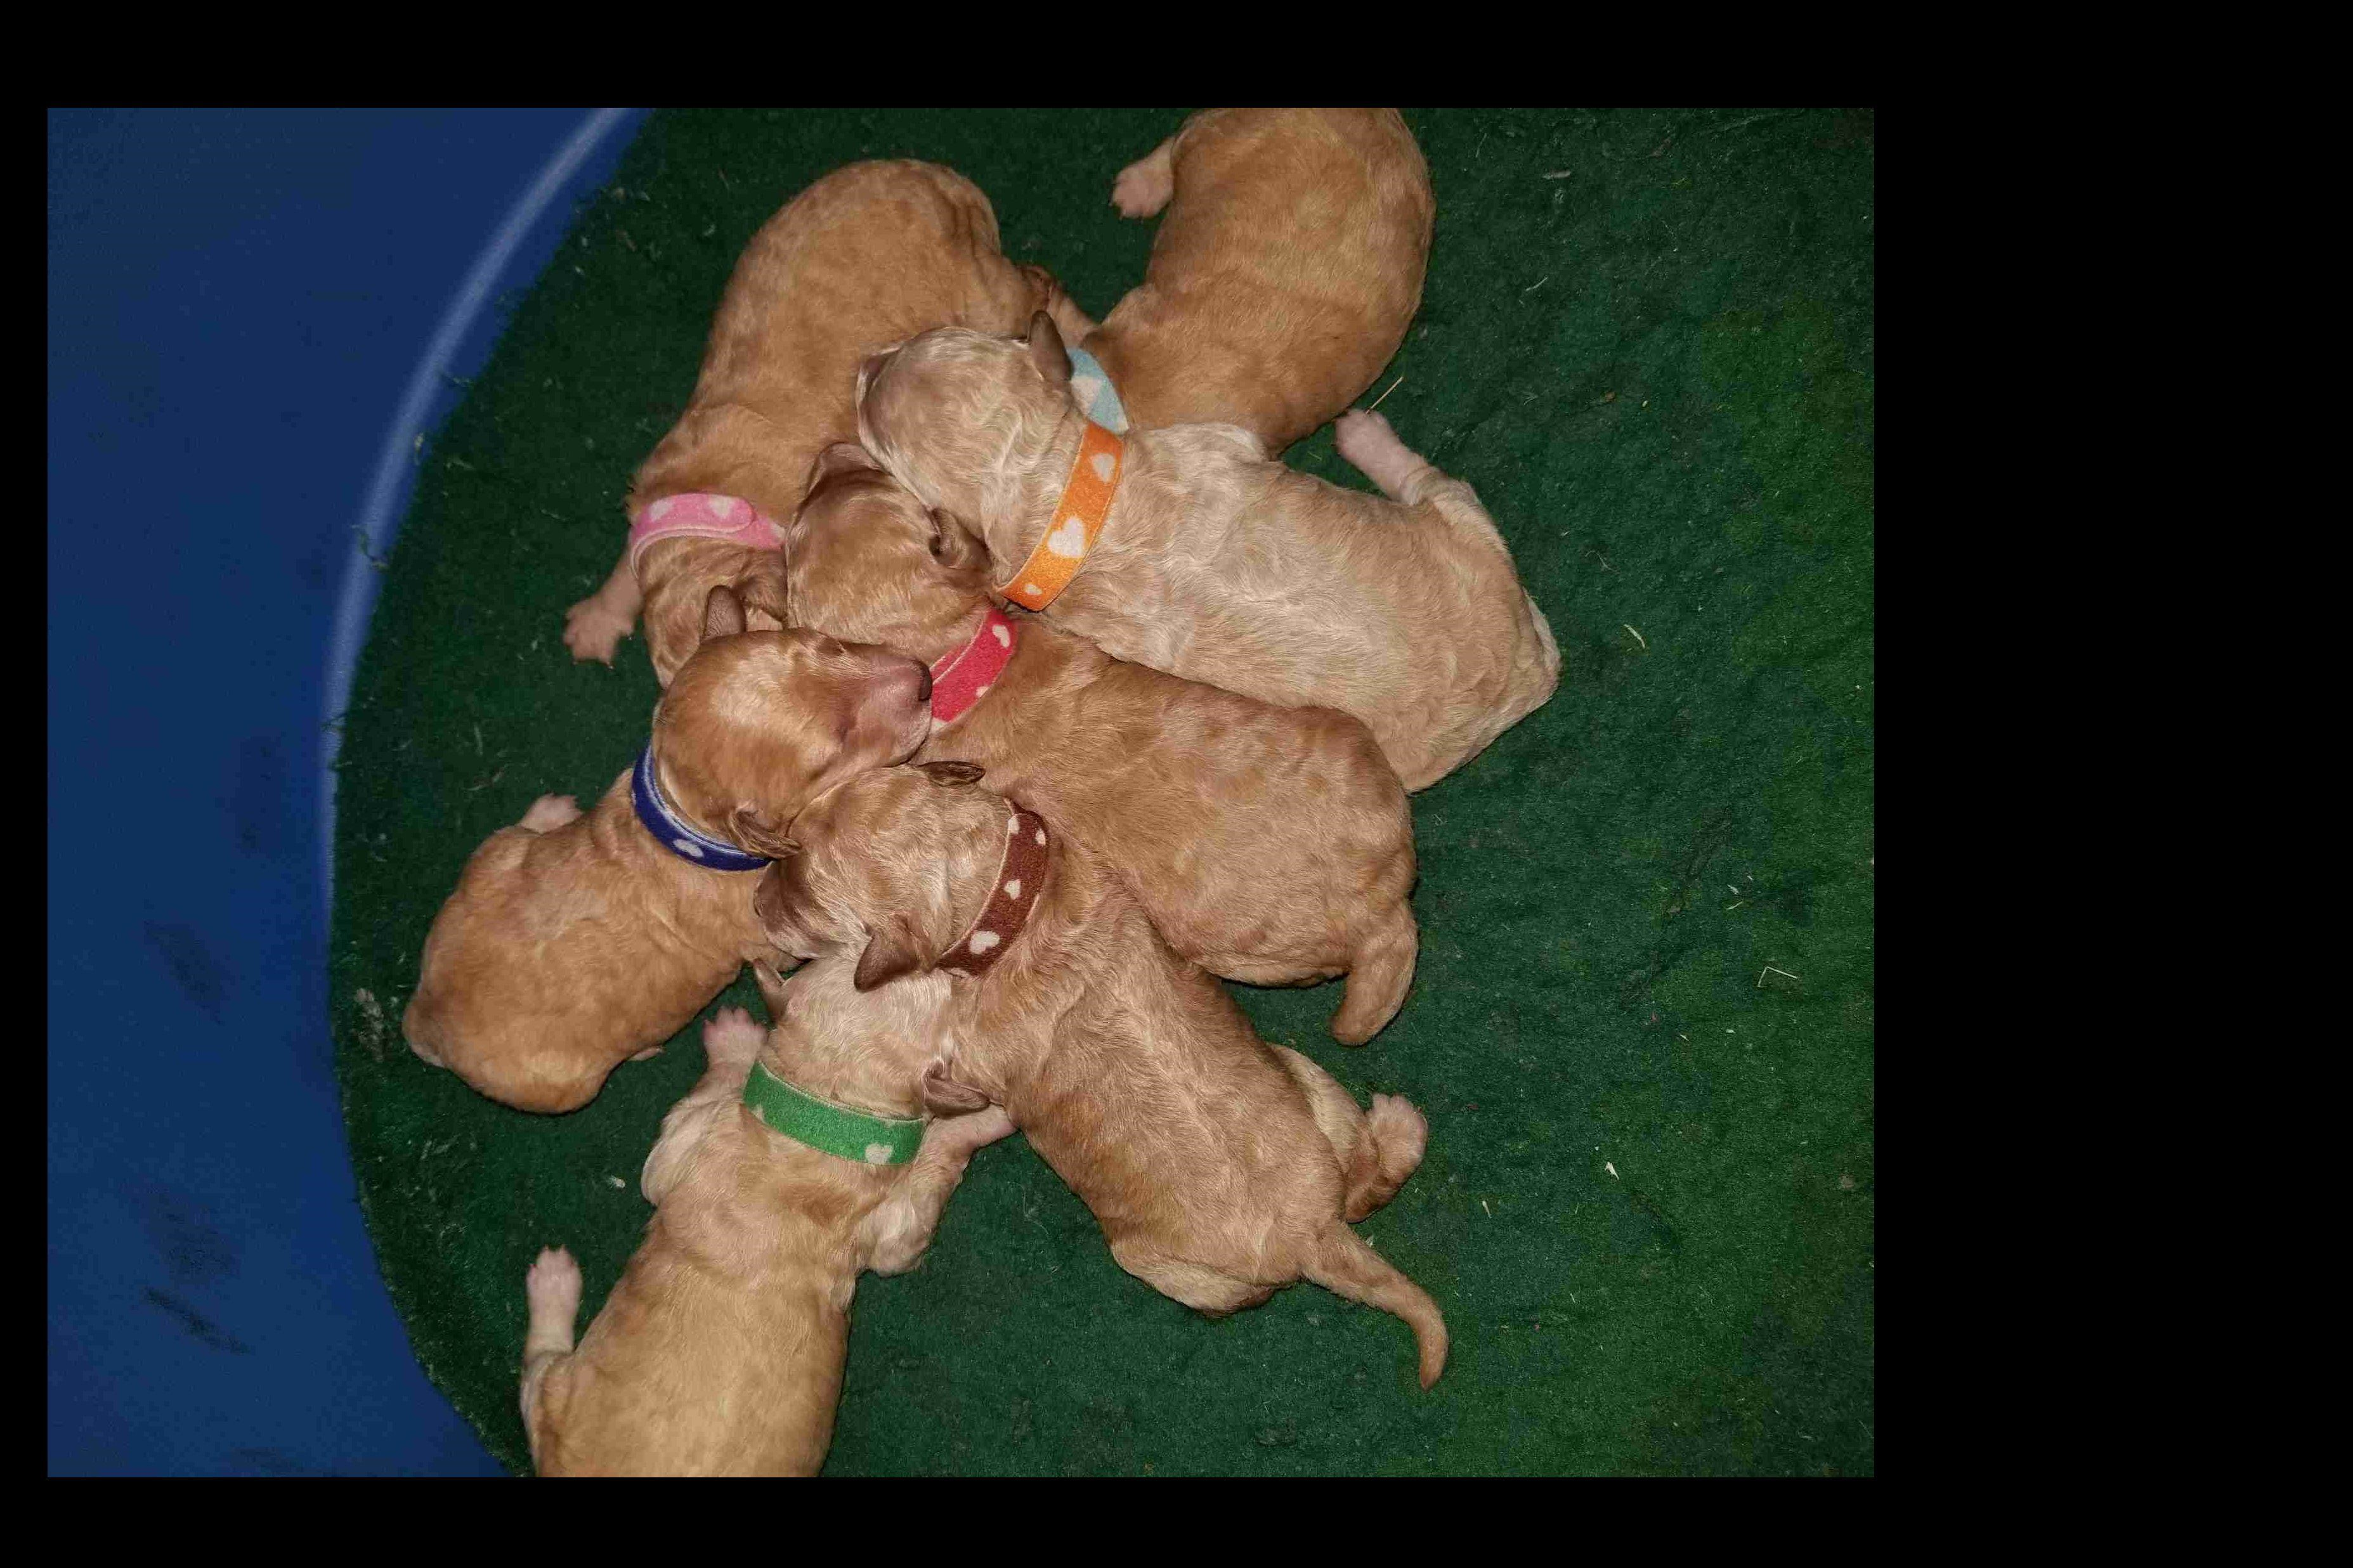 Rosemel S Poodles Has Poodle Puppies For Sale In Reno Nv On Akc